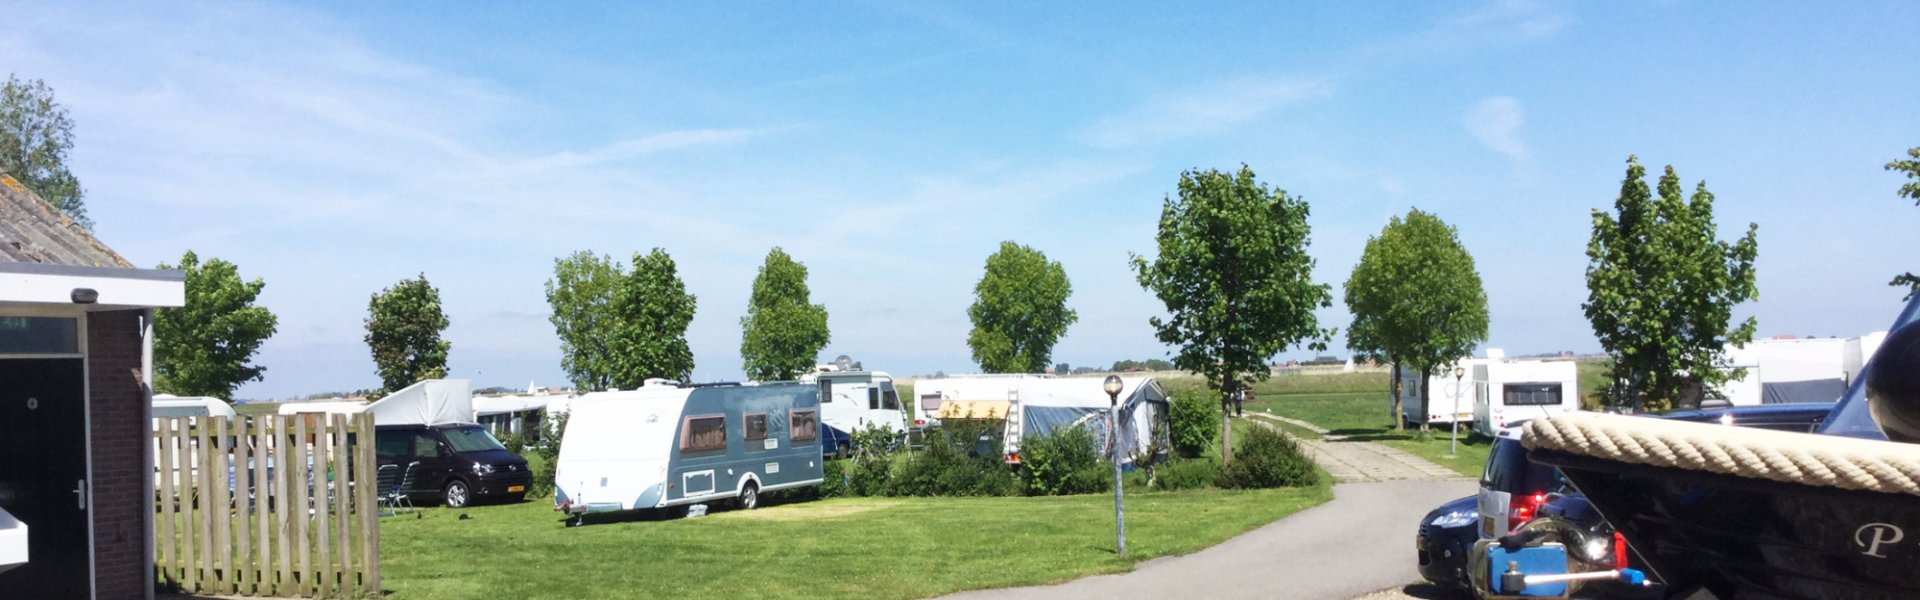 Camping in Friesland